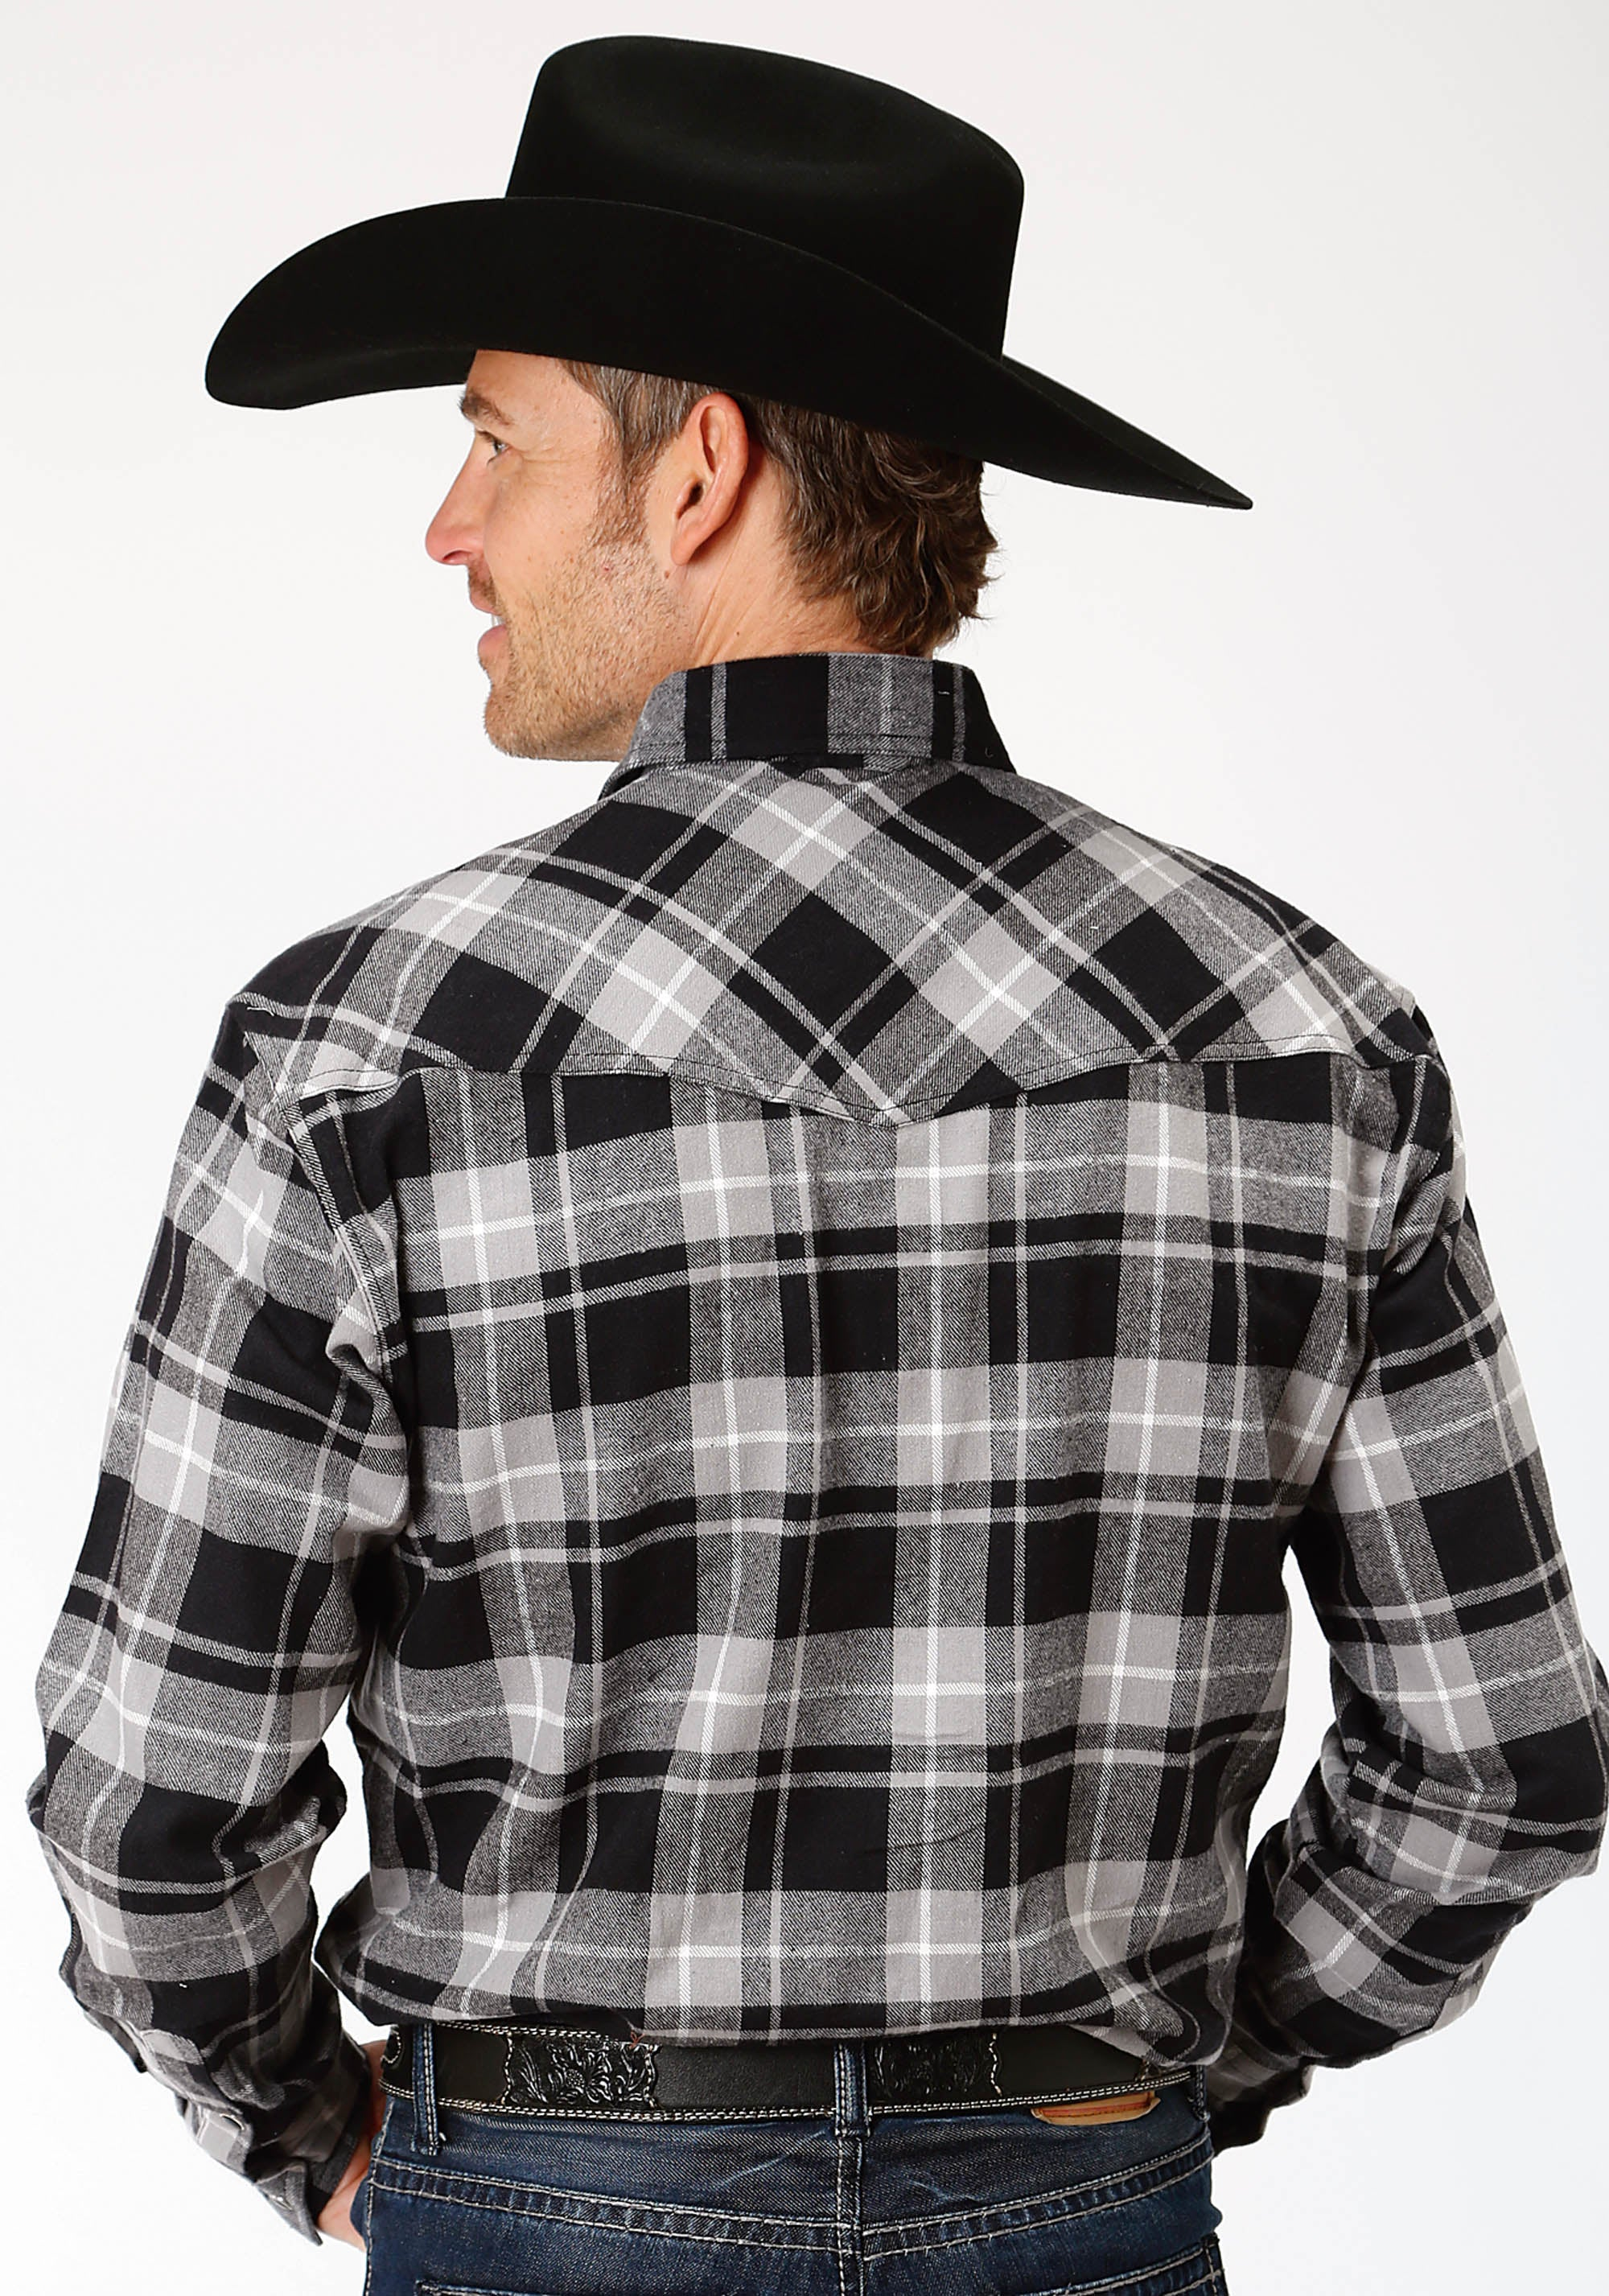 OUTERWEAR MENS BLACK 9372 BL/GY PLAID FLANNEL SHIRT PRE-PACK